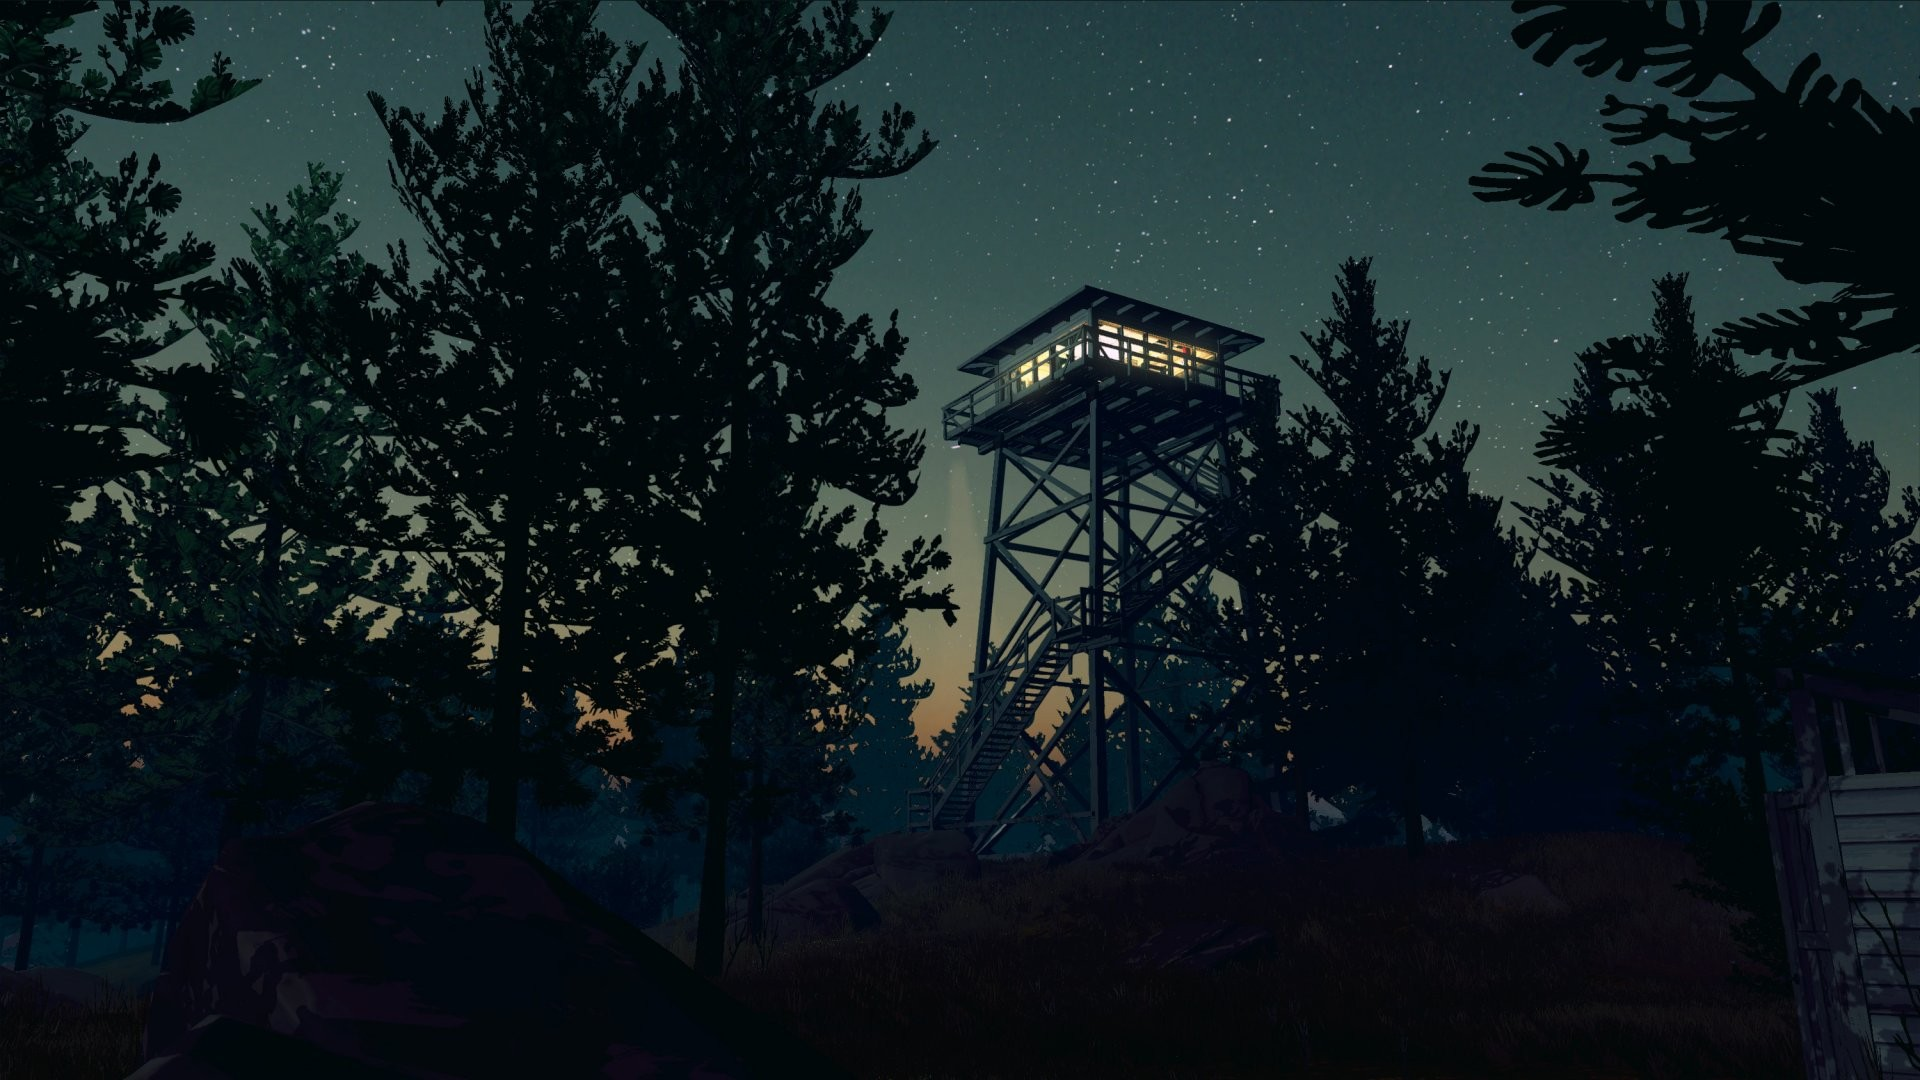 38+ firewatch wallpapers ·① download free beautiful high resolution